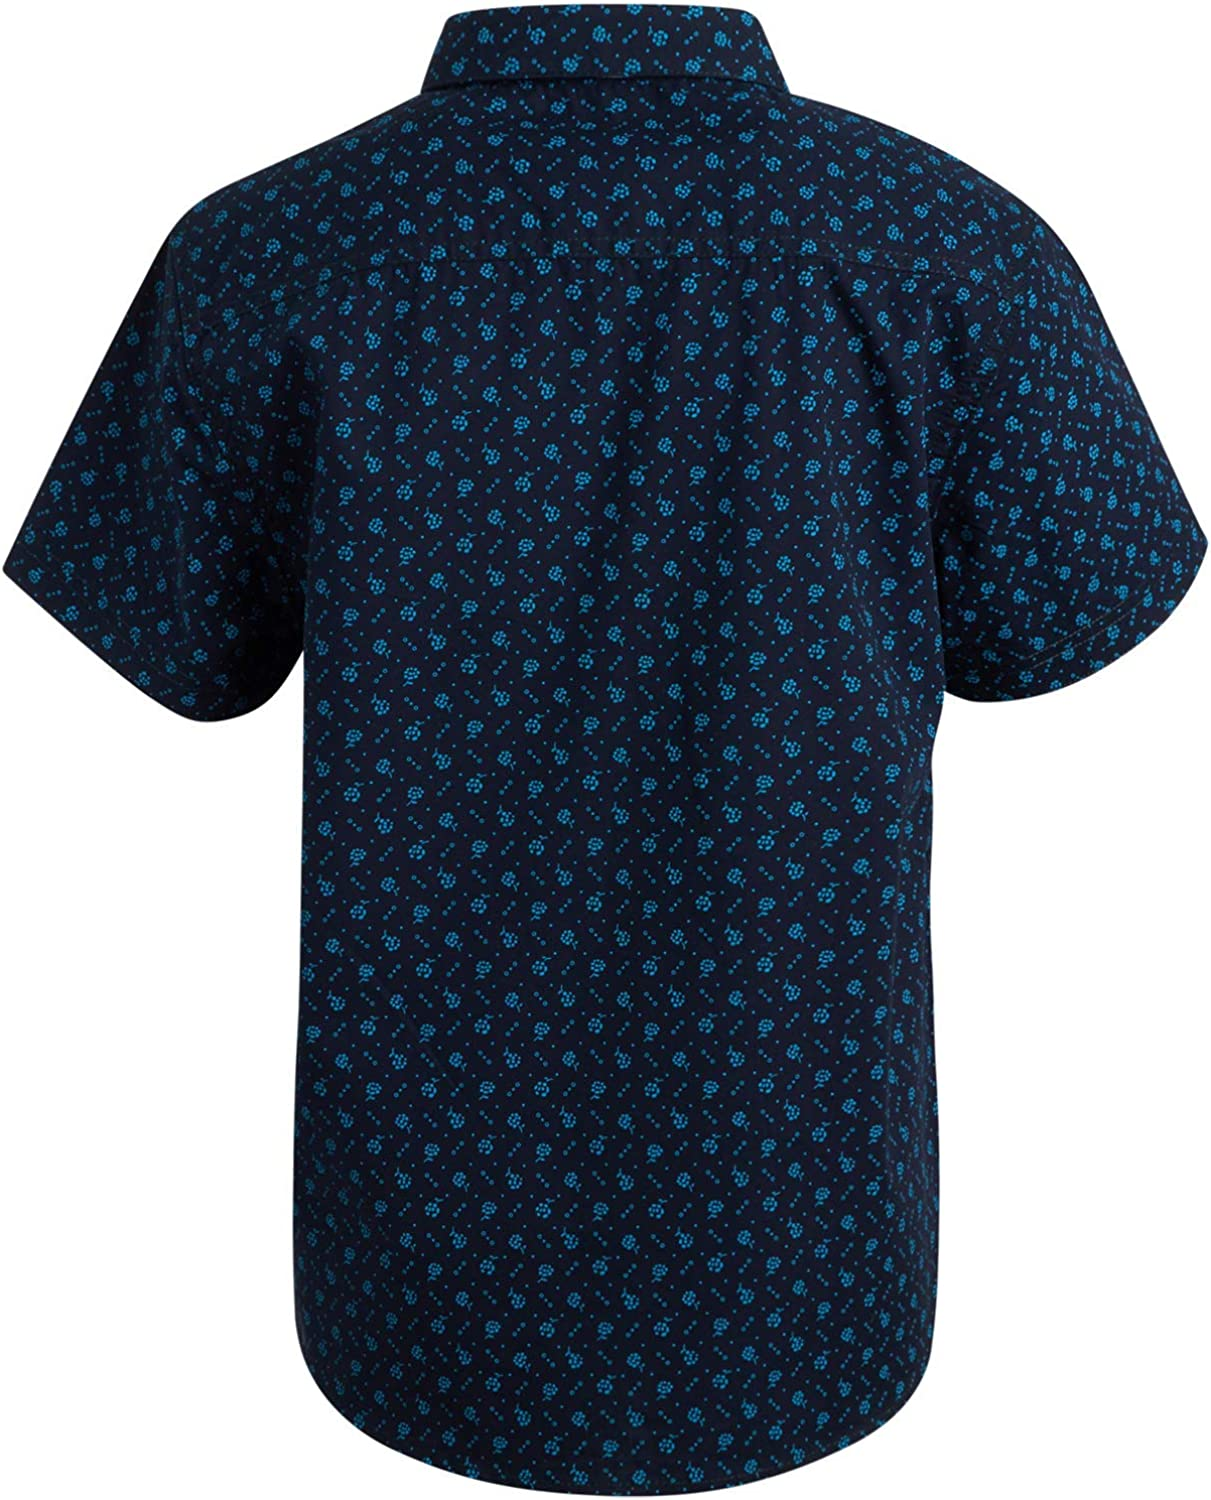 Perry Ellis Boys/' Short Sleeve Button Down Printed Shirt